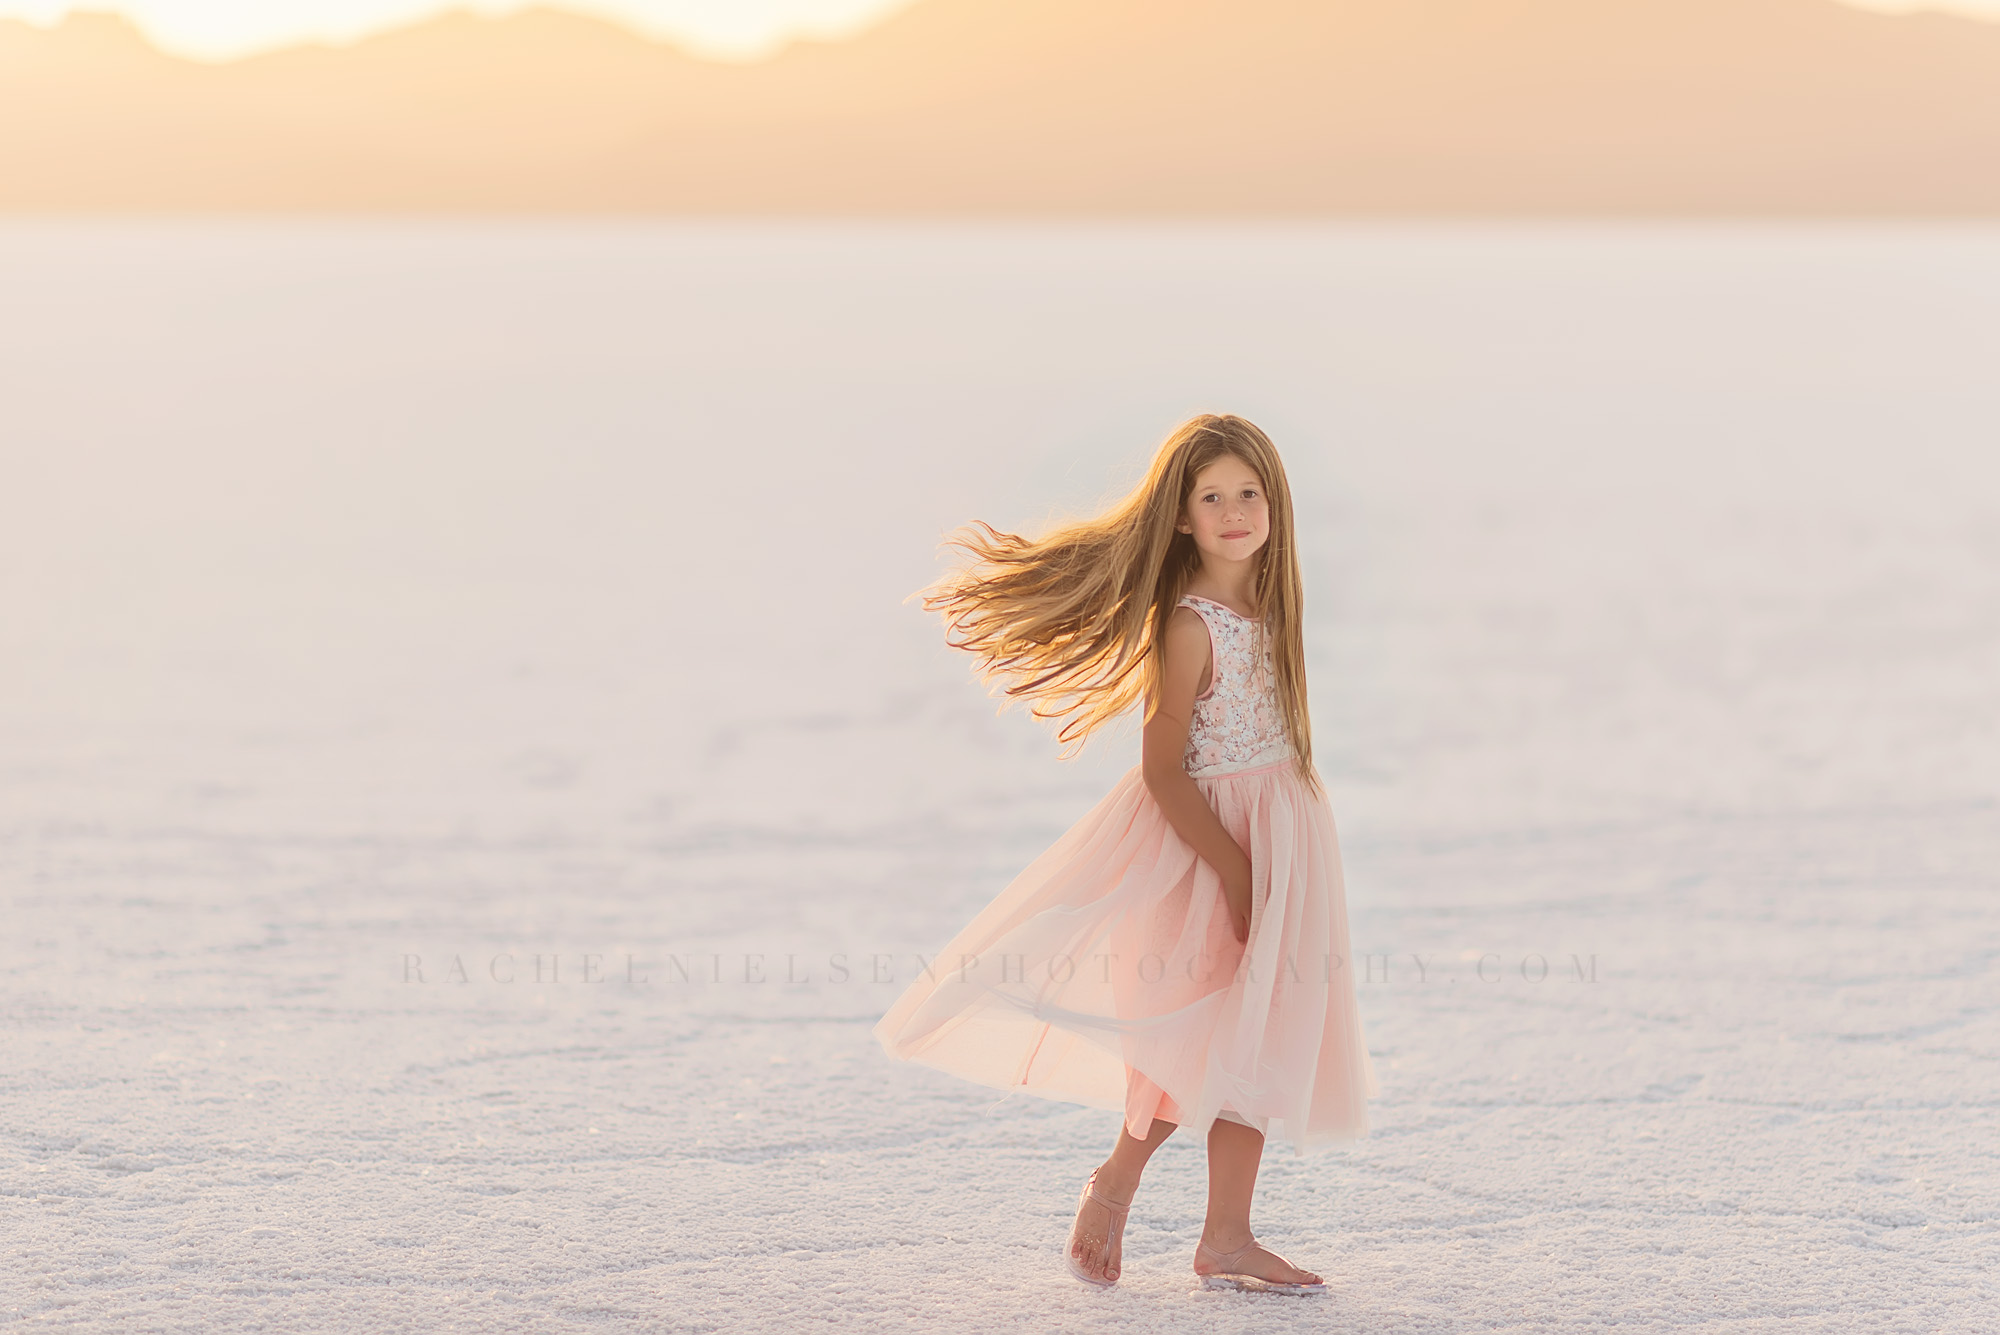 Salt Flats photographer